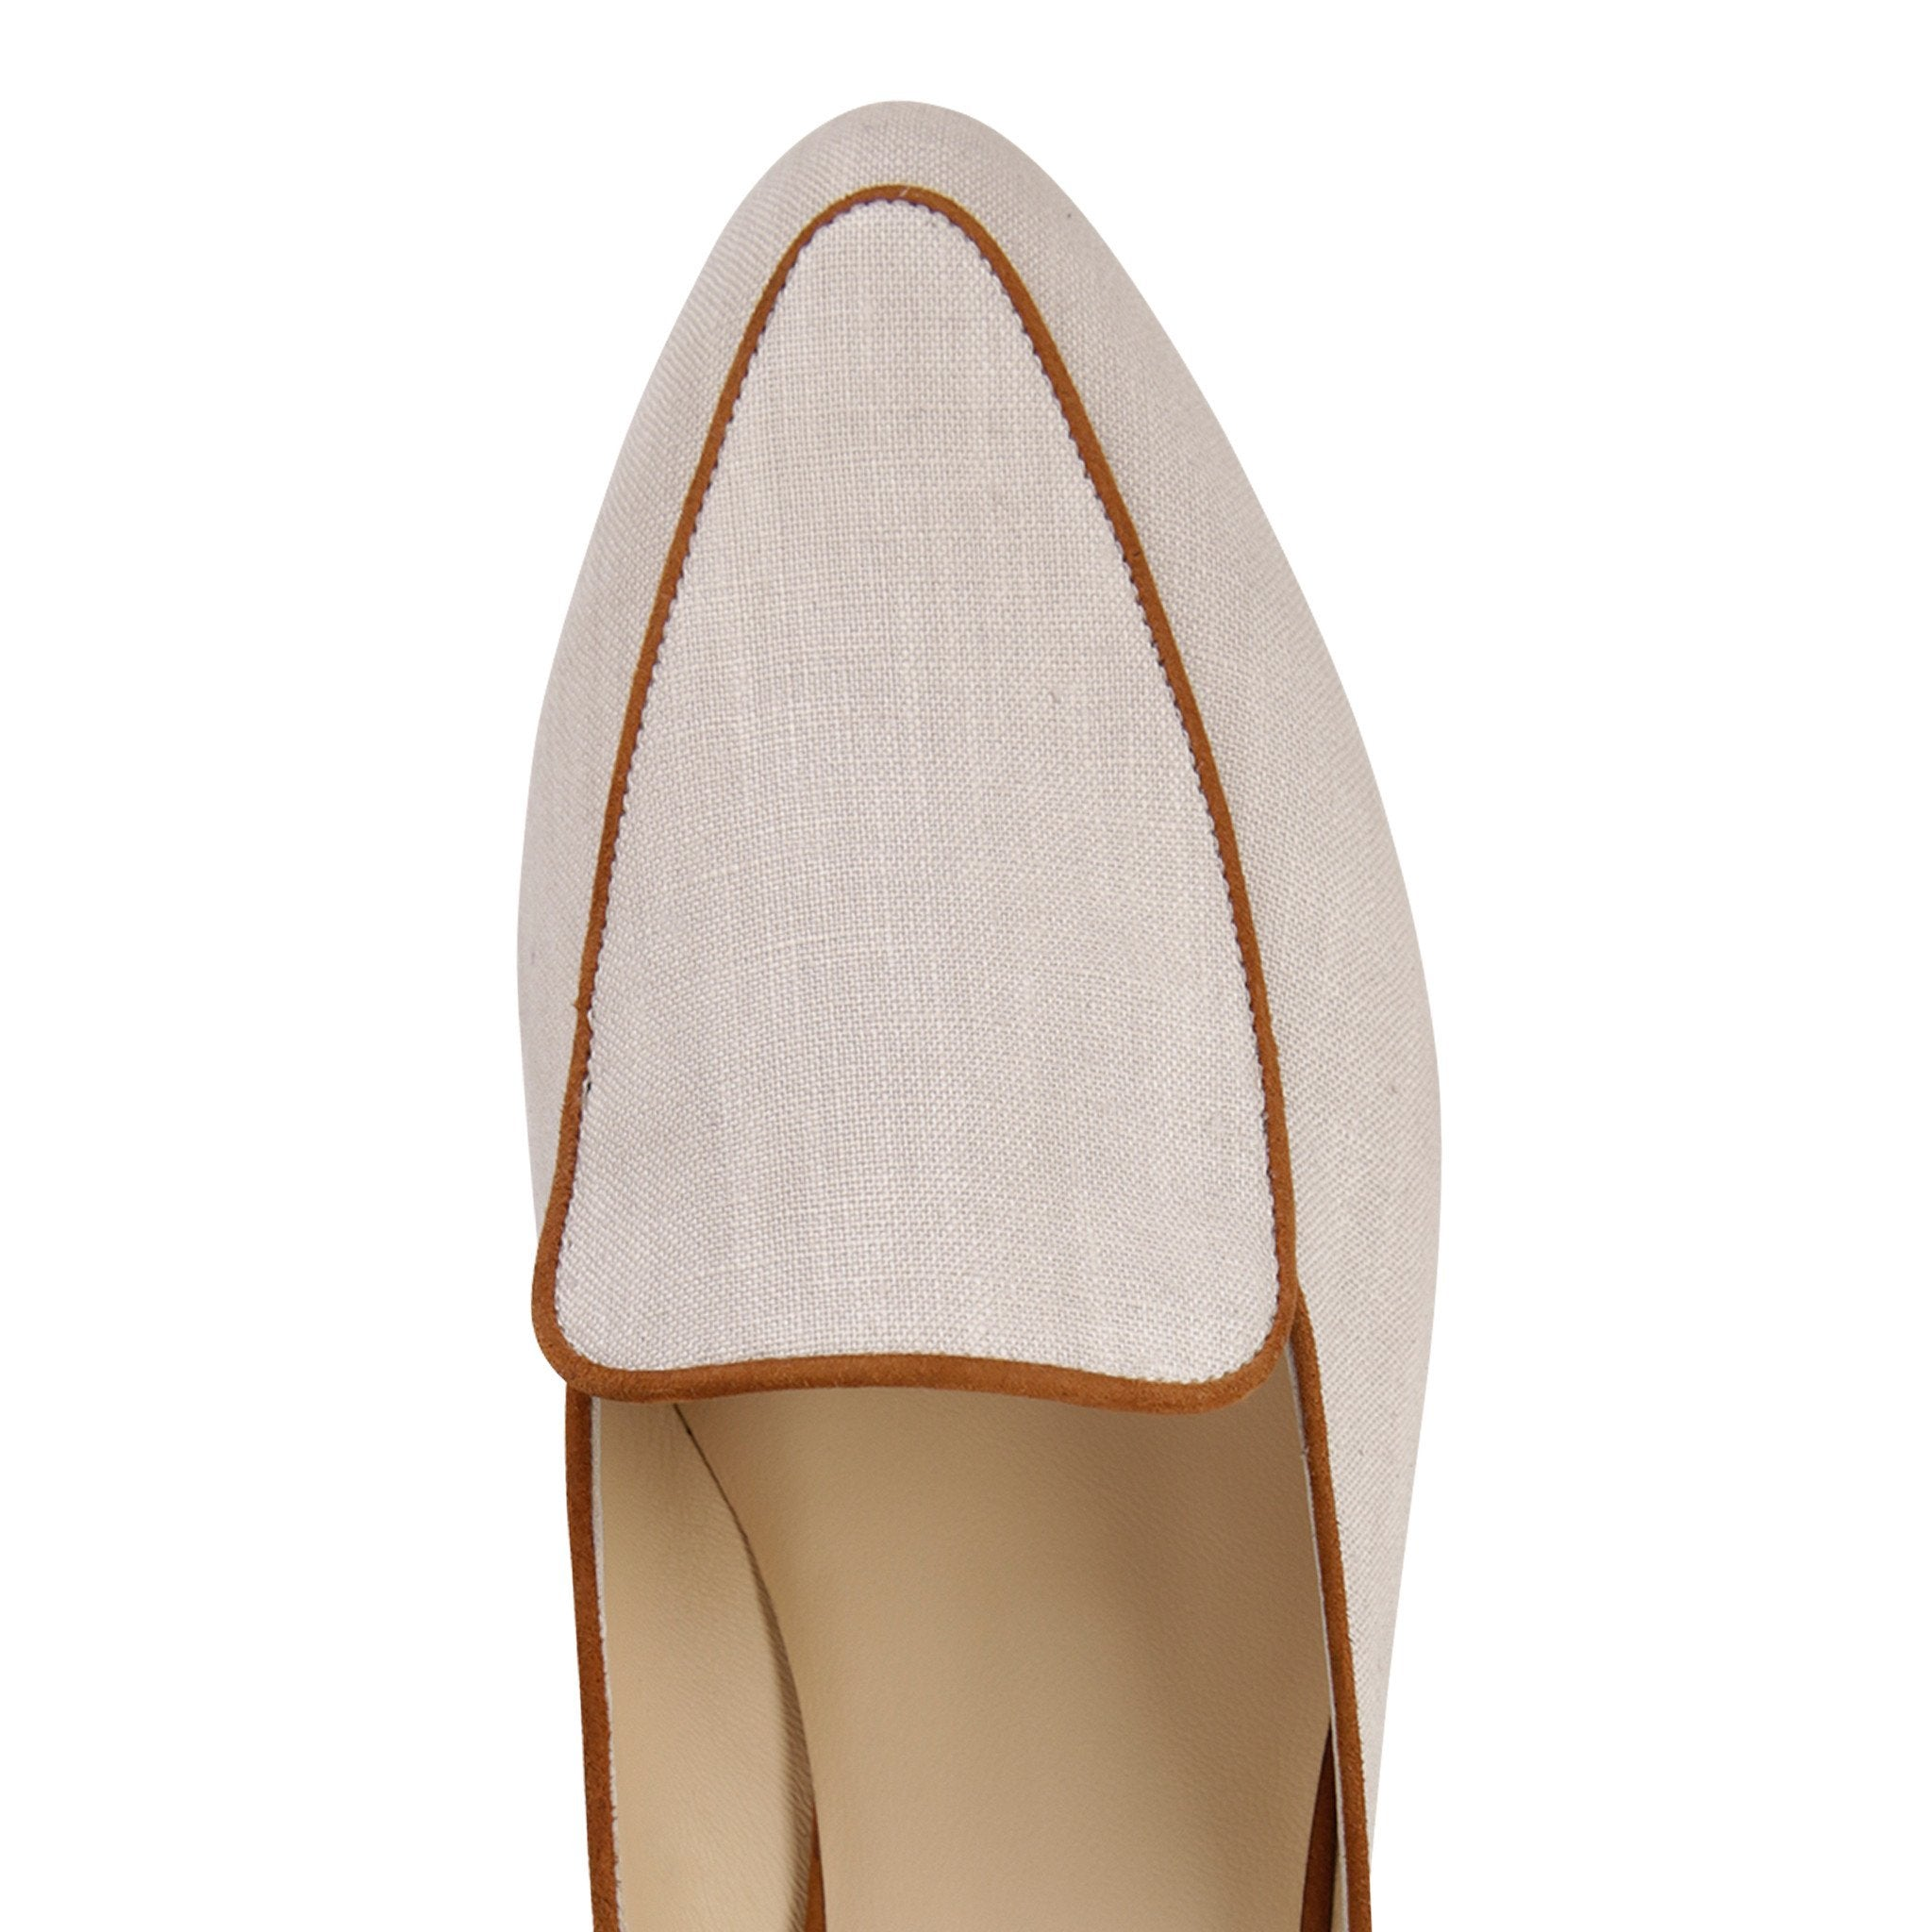 ISEO - Linen Natural + Velukid Dune, VIAJIYU - Women's Hand Made Sustainable Luxury Shoes. Made in Italy. Made to Order.